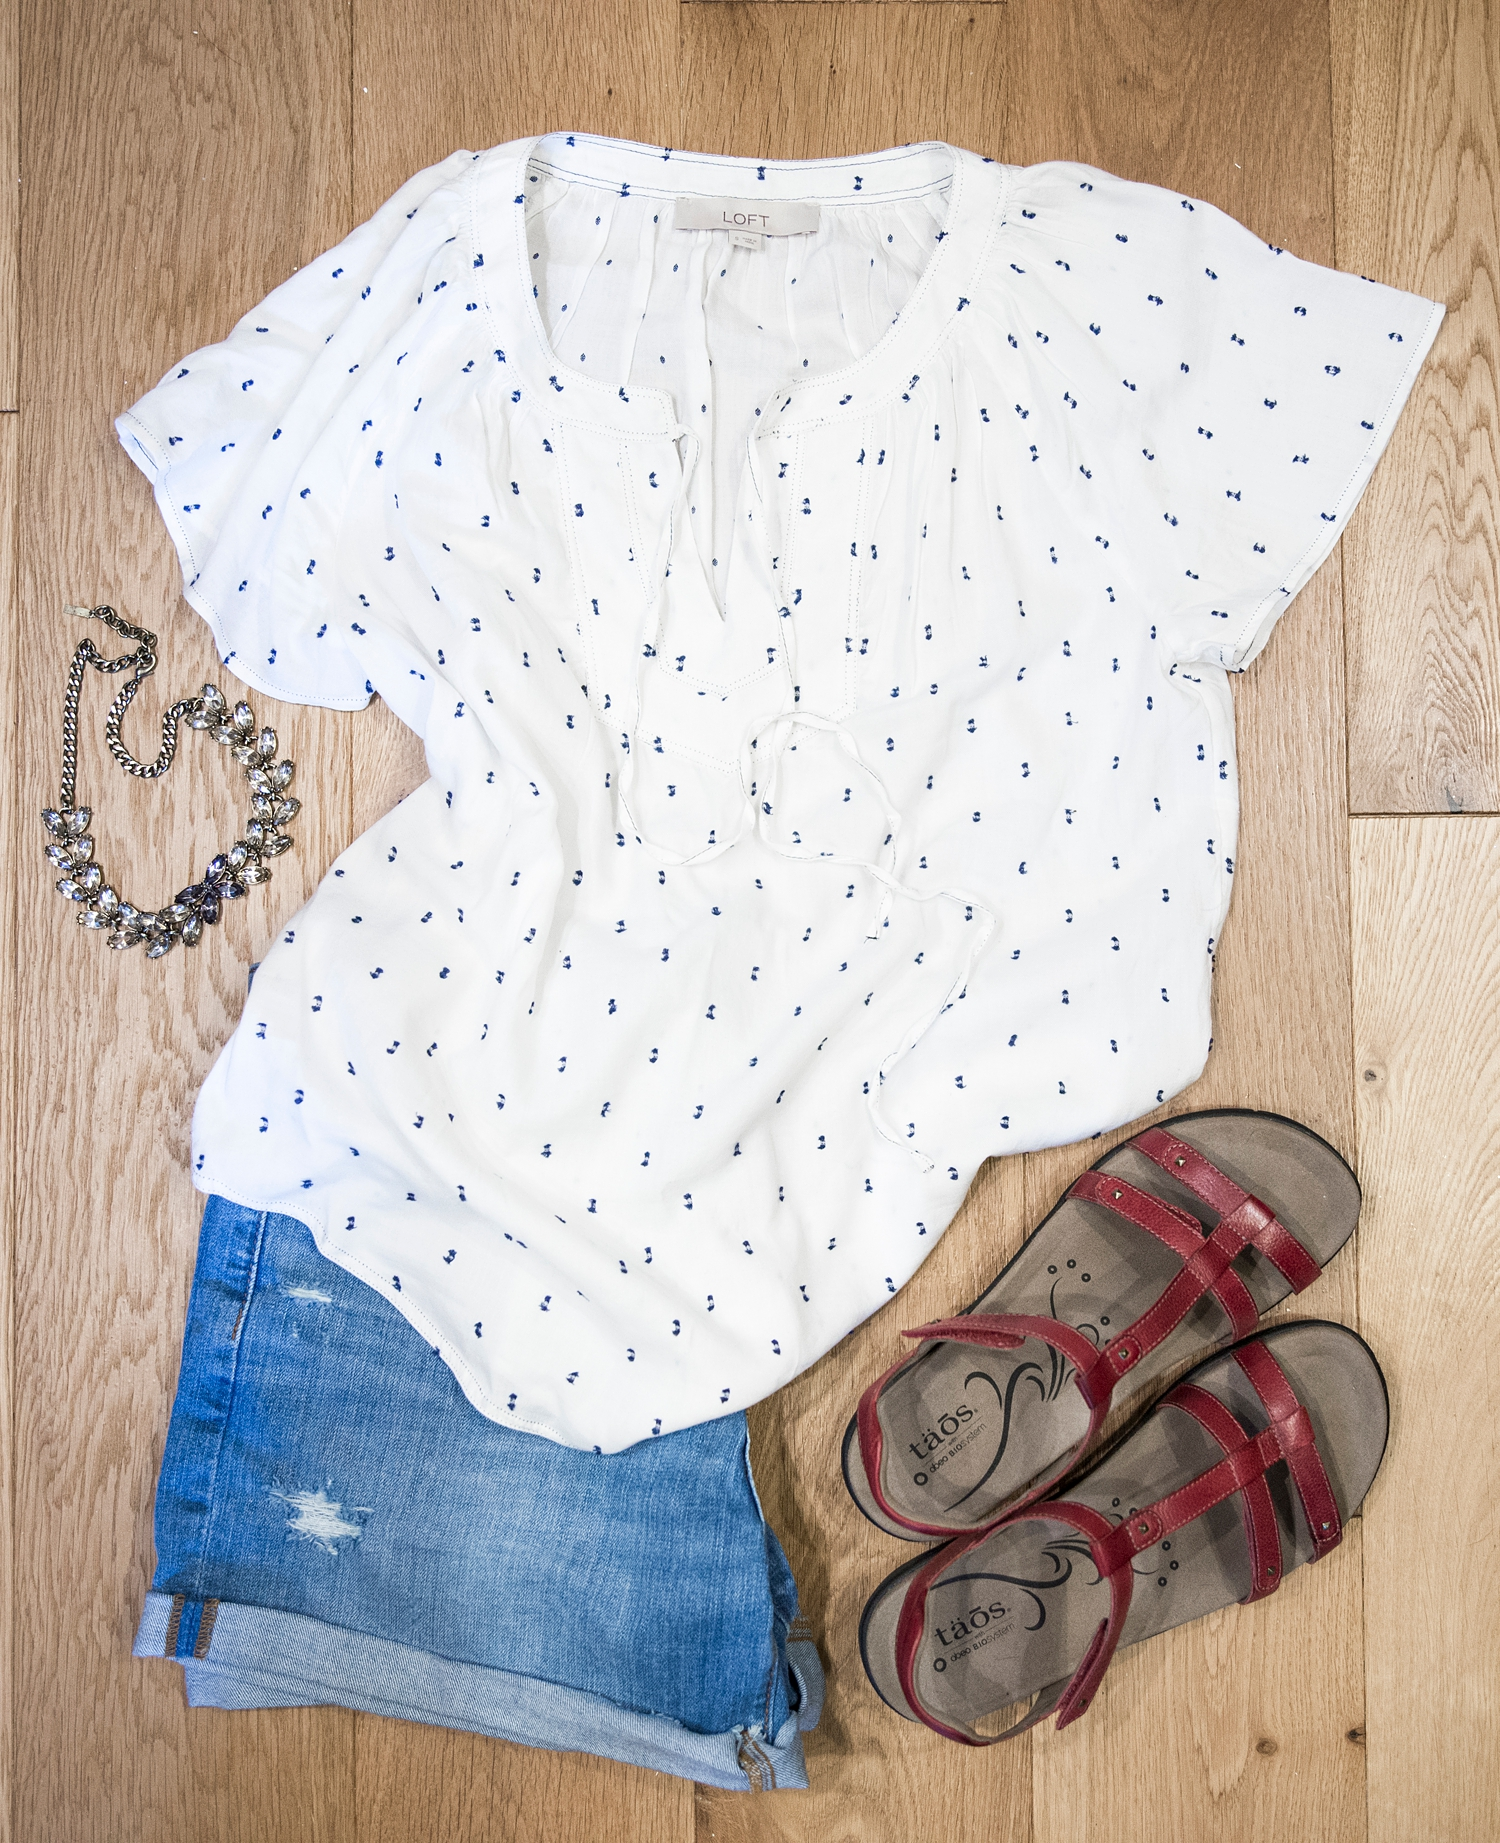 A flowy top makes everything feel dressier and more feminine! That's an easy and inexpensive way to update your summer wardrobe for women over 40.